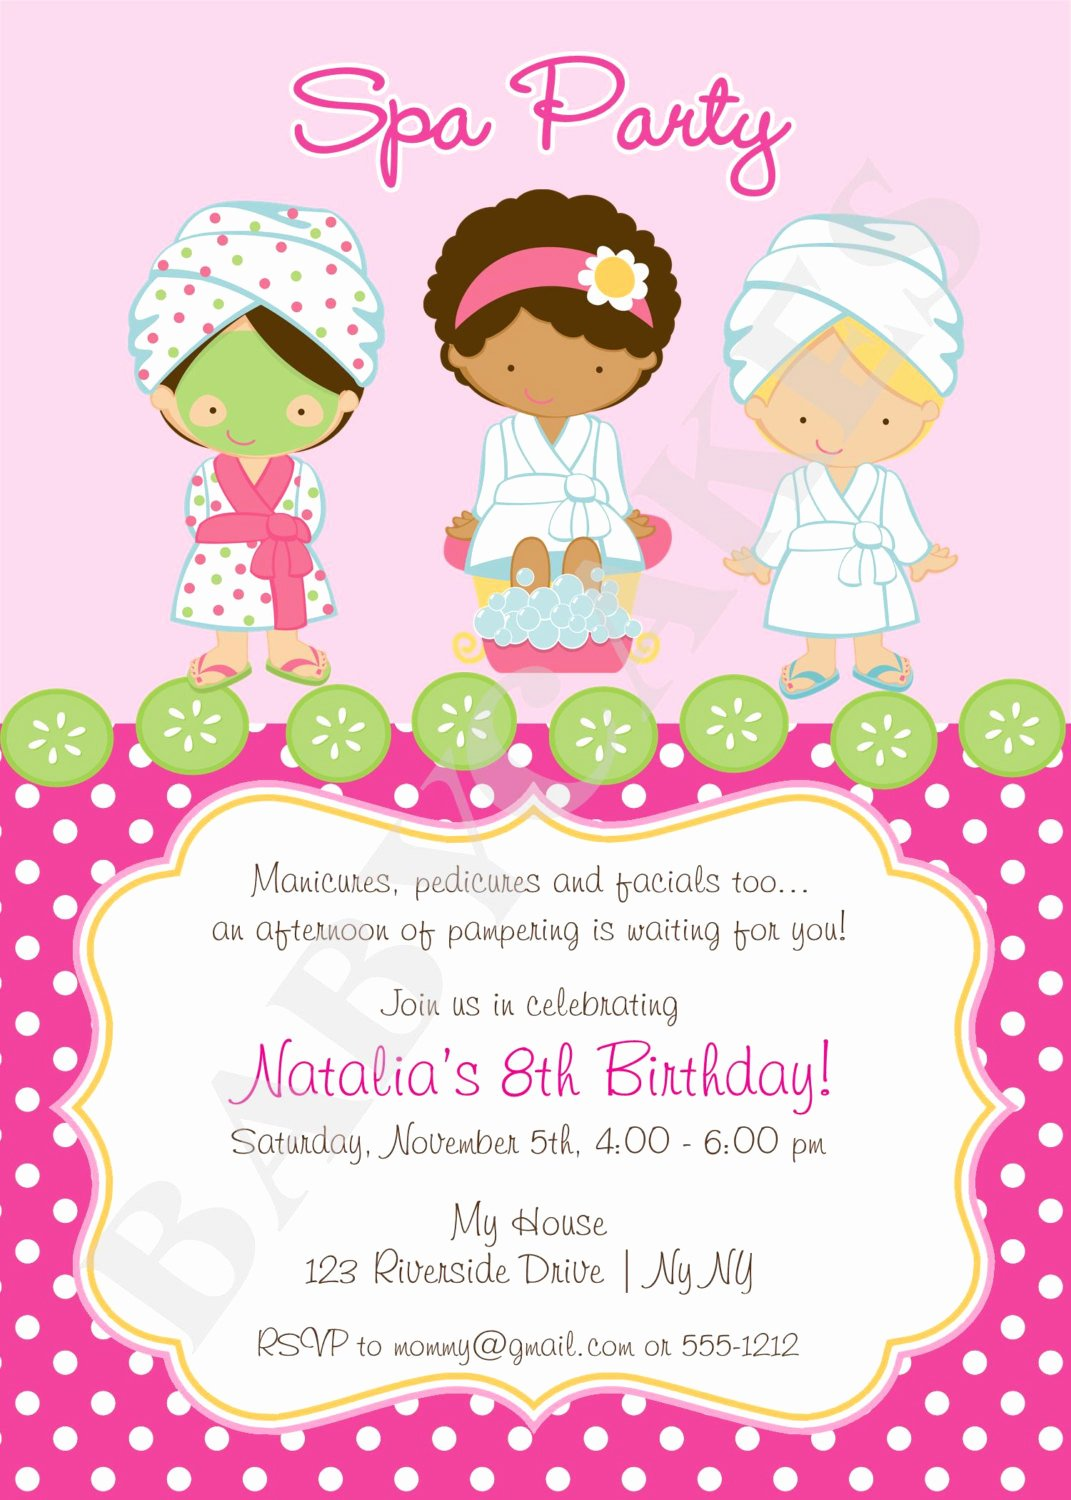 Spa Party Invitation Wording Awesome Spa Party Invitation Diy Print Your Own Matching by